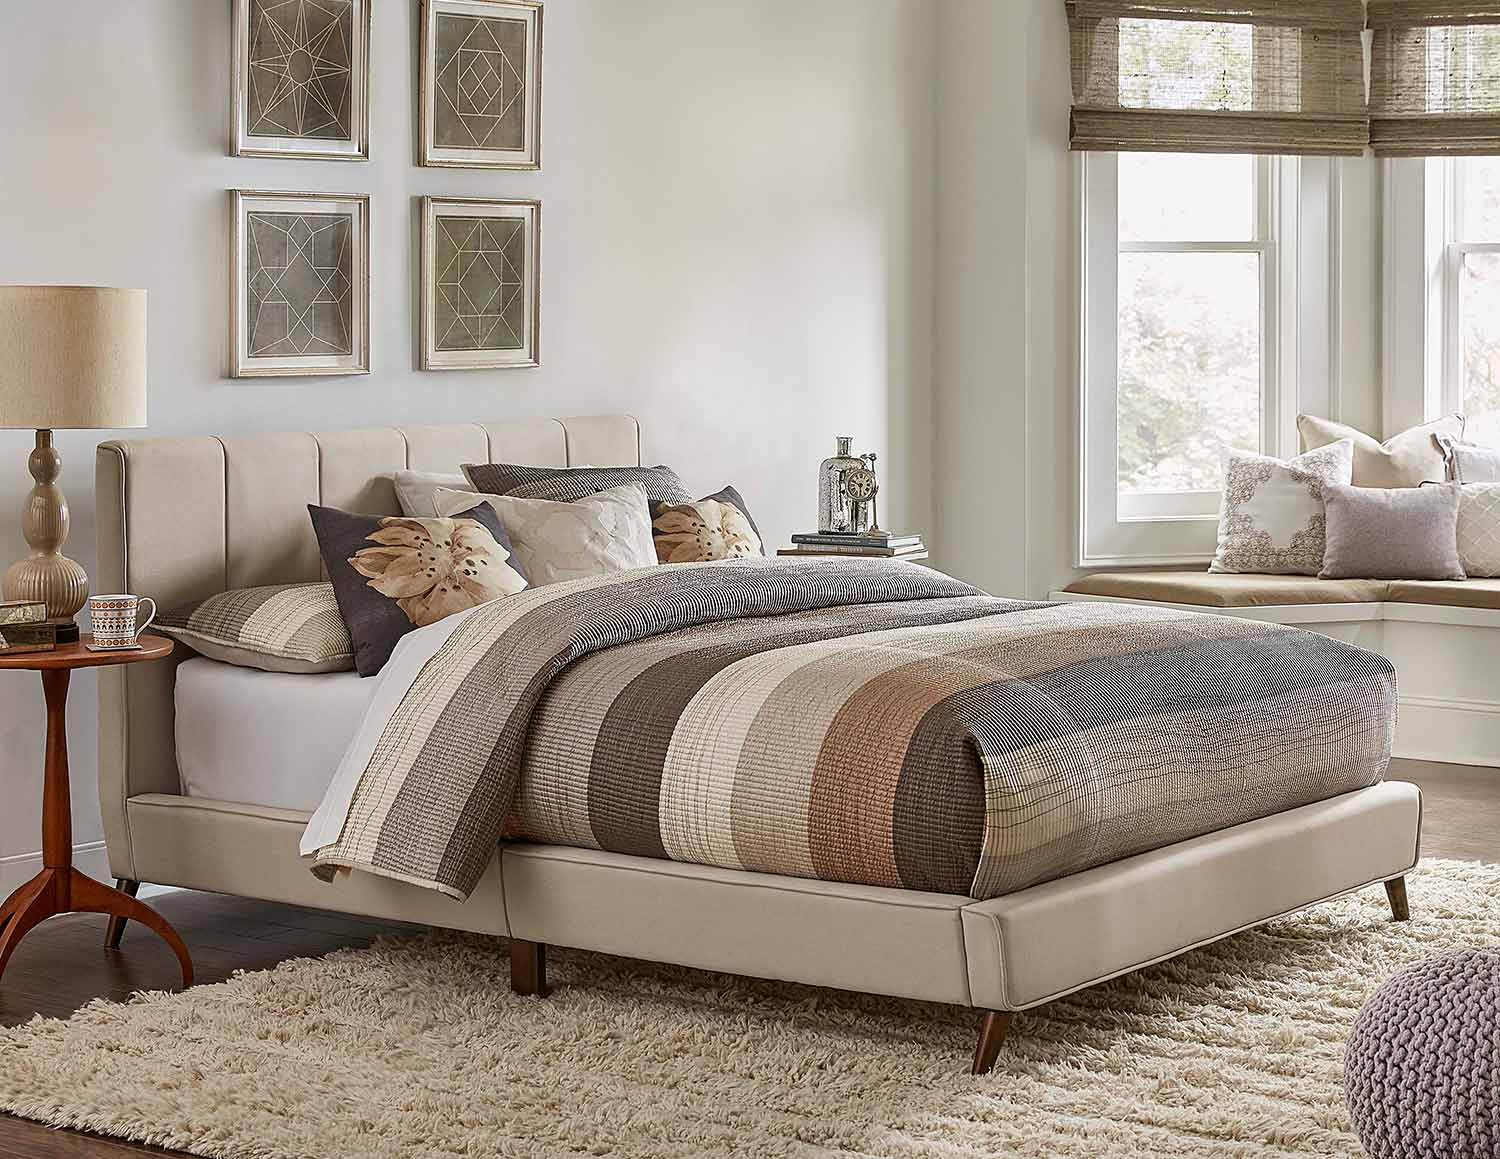 Hillsdale Aussie Upholstered Bed - Fog Fabric